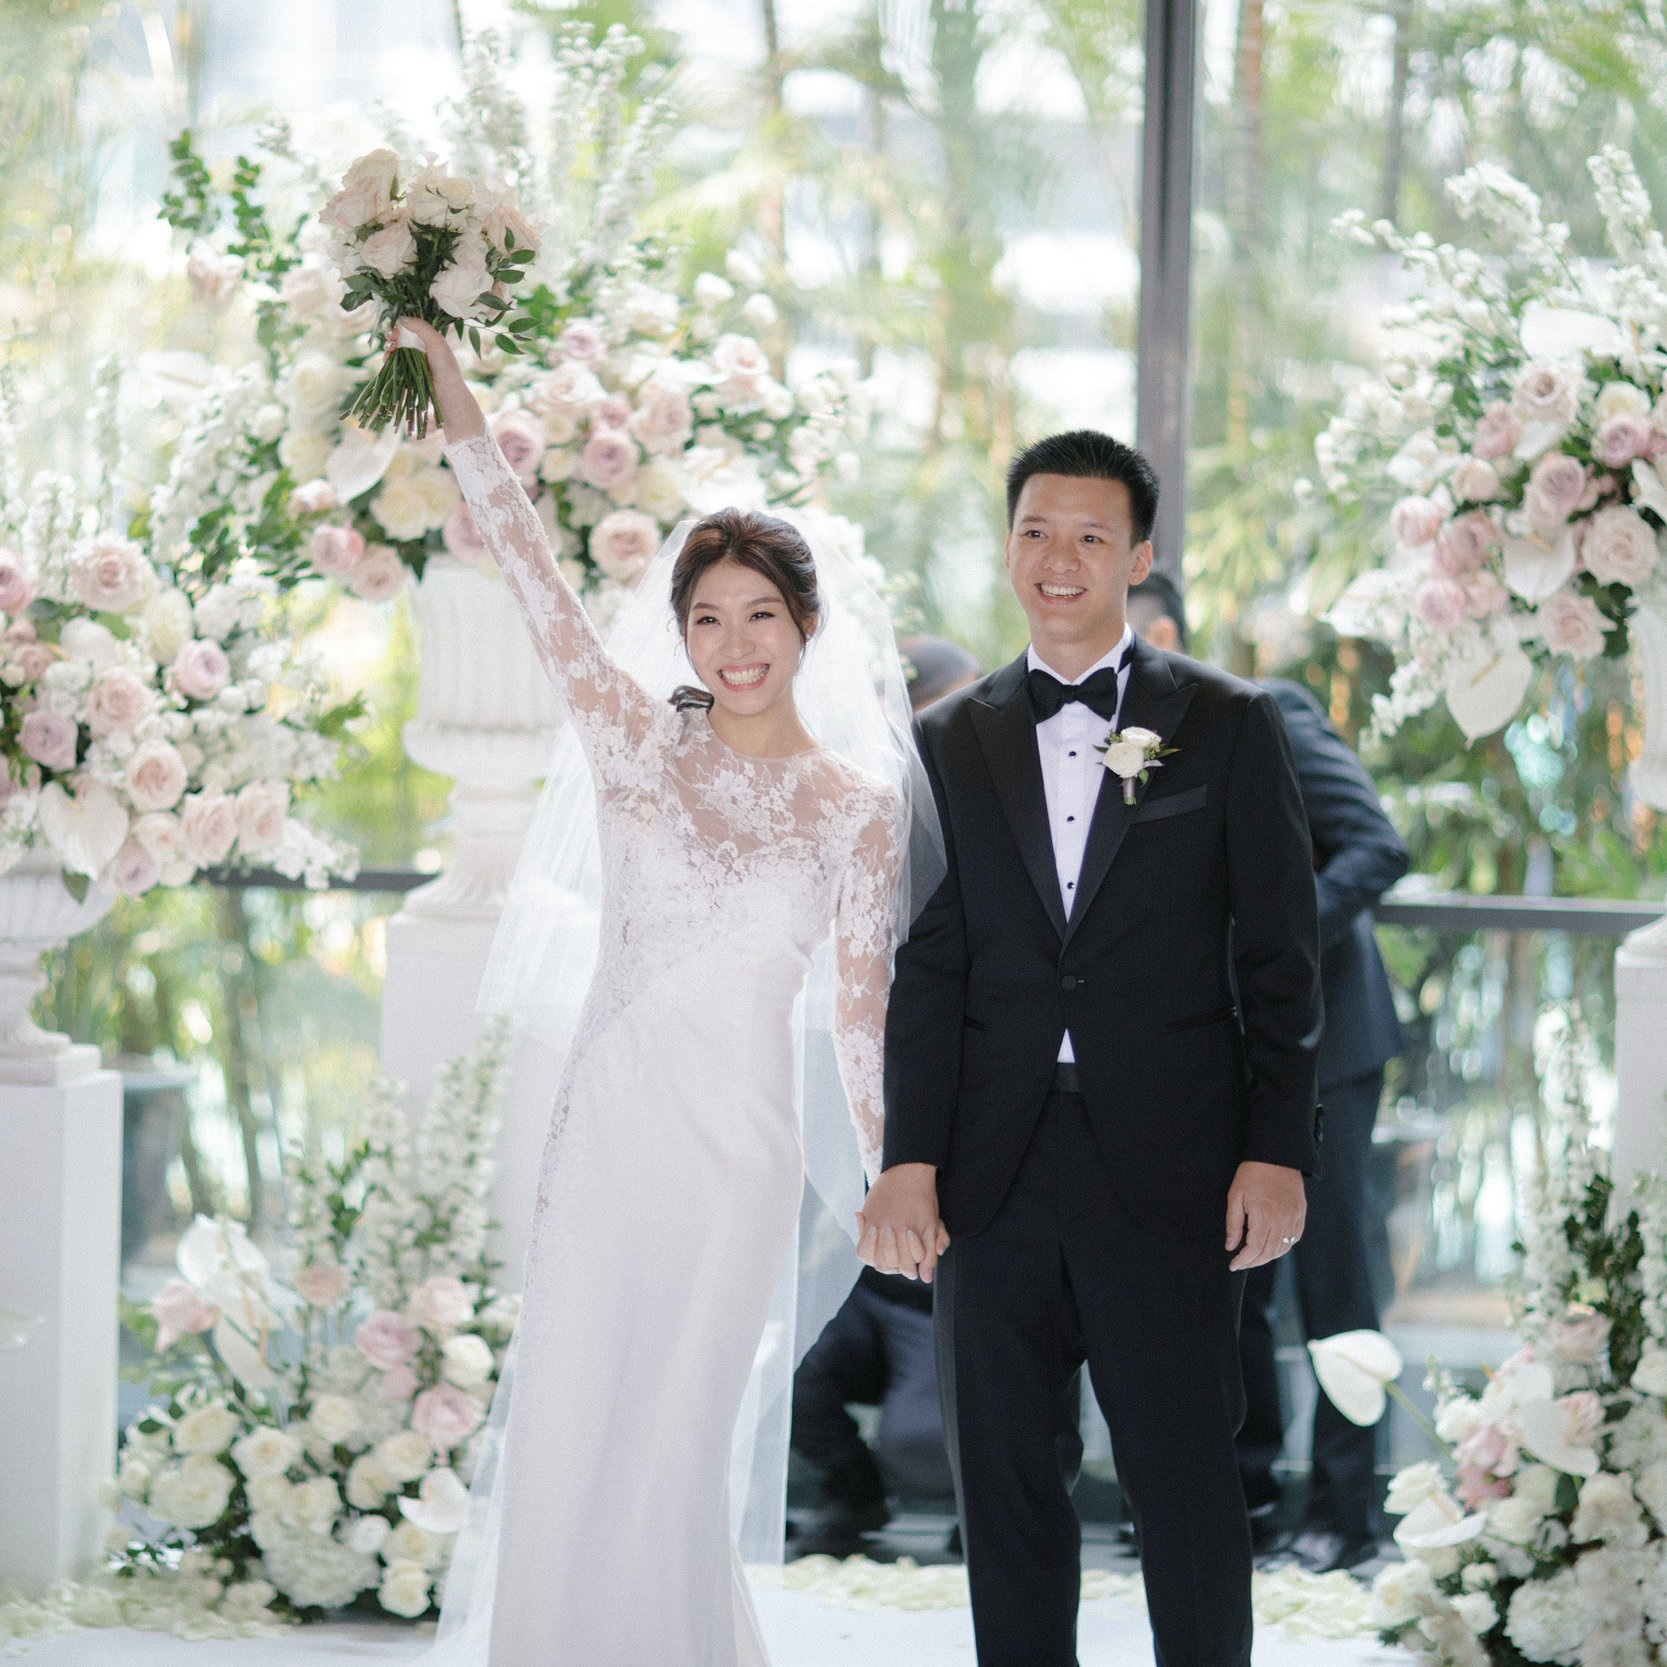 Arlene-Bosco-Grand-Hyatt-Pool-House-Wedding-Four-Seasons-Hong-Kong-Planner